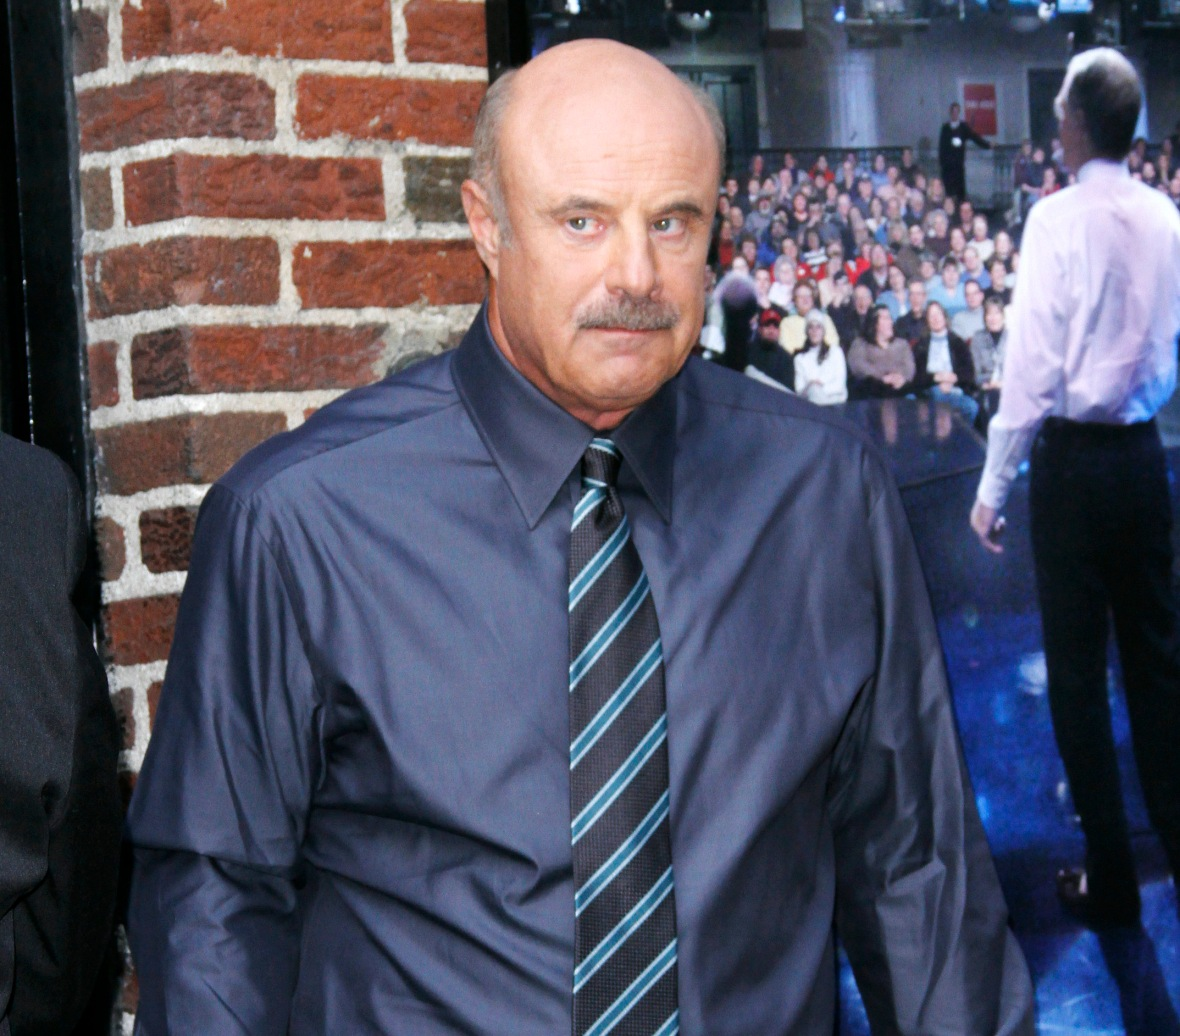 dr. phil car crash getty